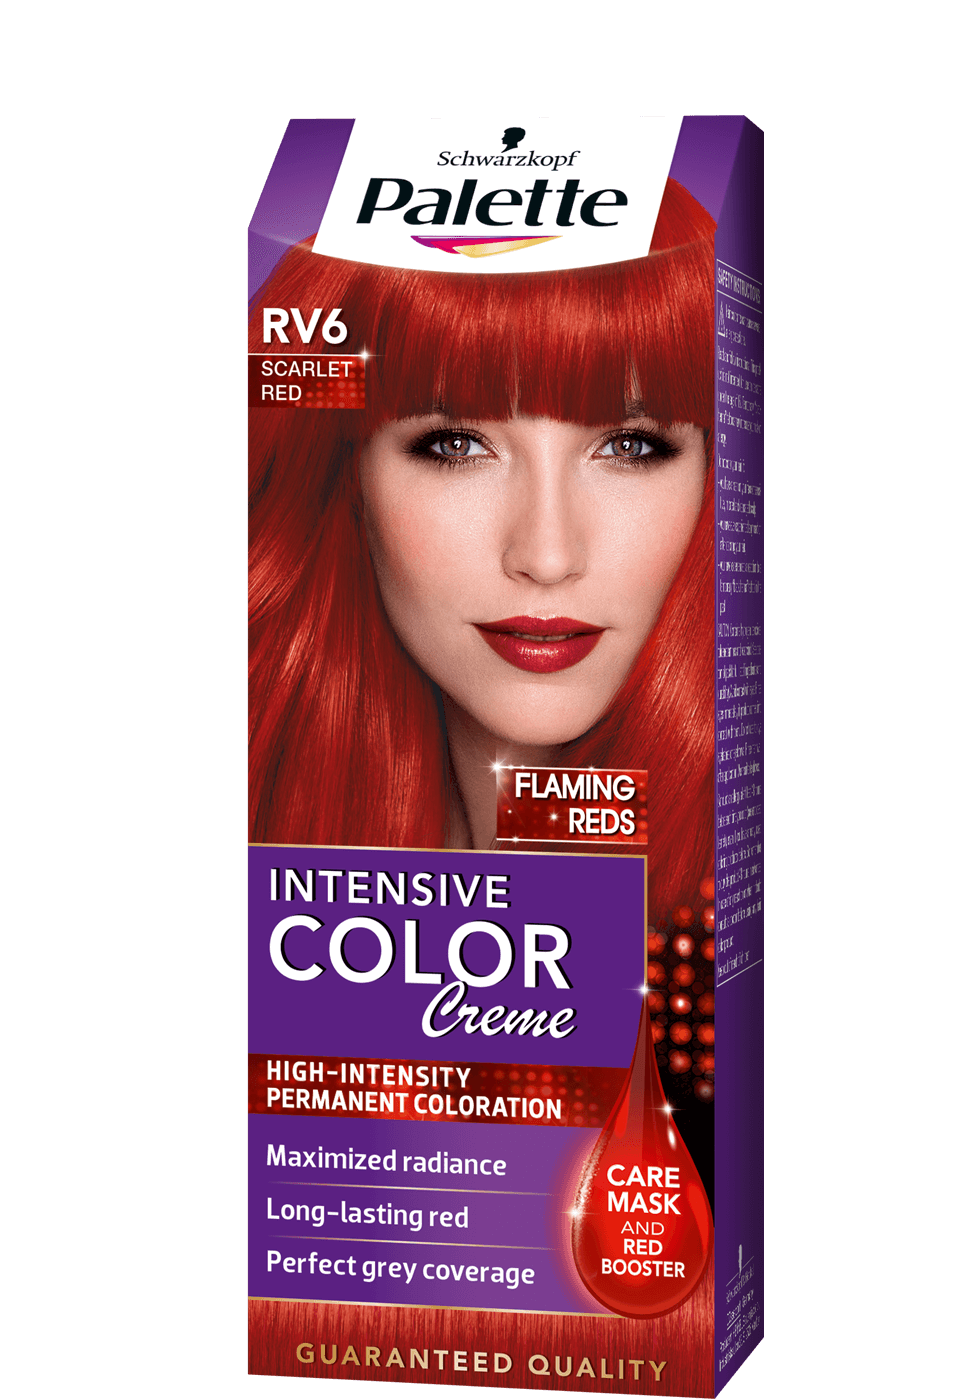 palette_com_icc_flaming_reds_RV6_scarlet_red_970x1400